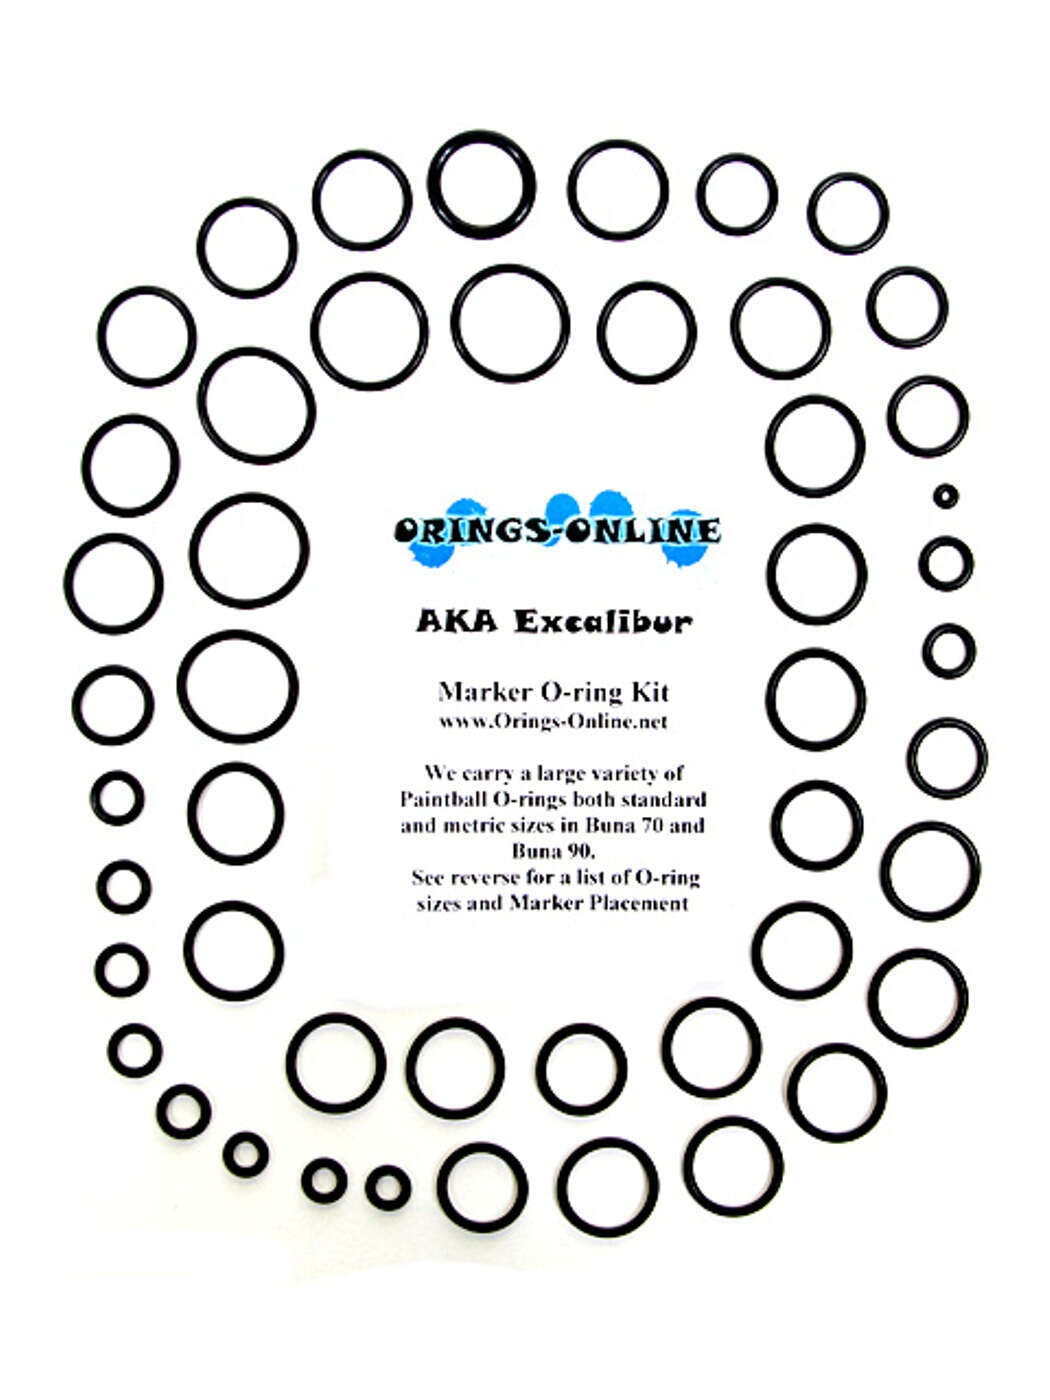 AKA Excalibur Marker O-ring Kit